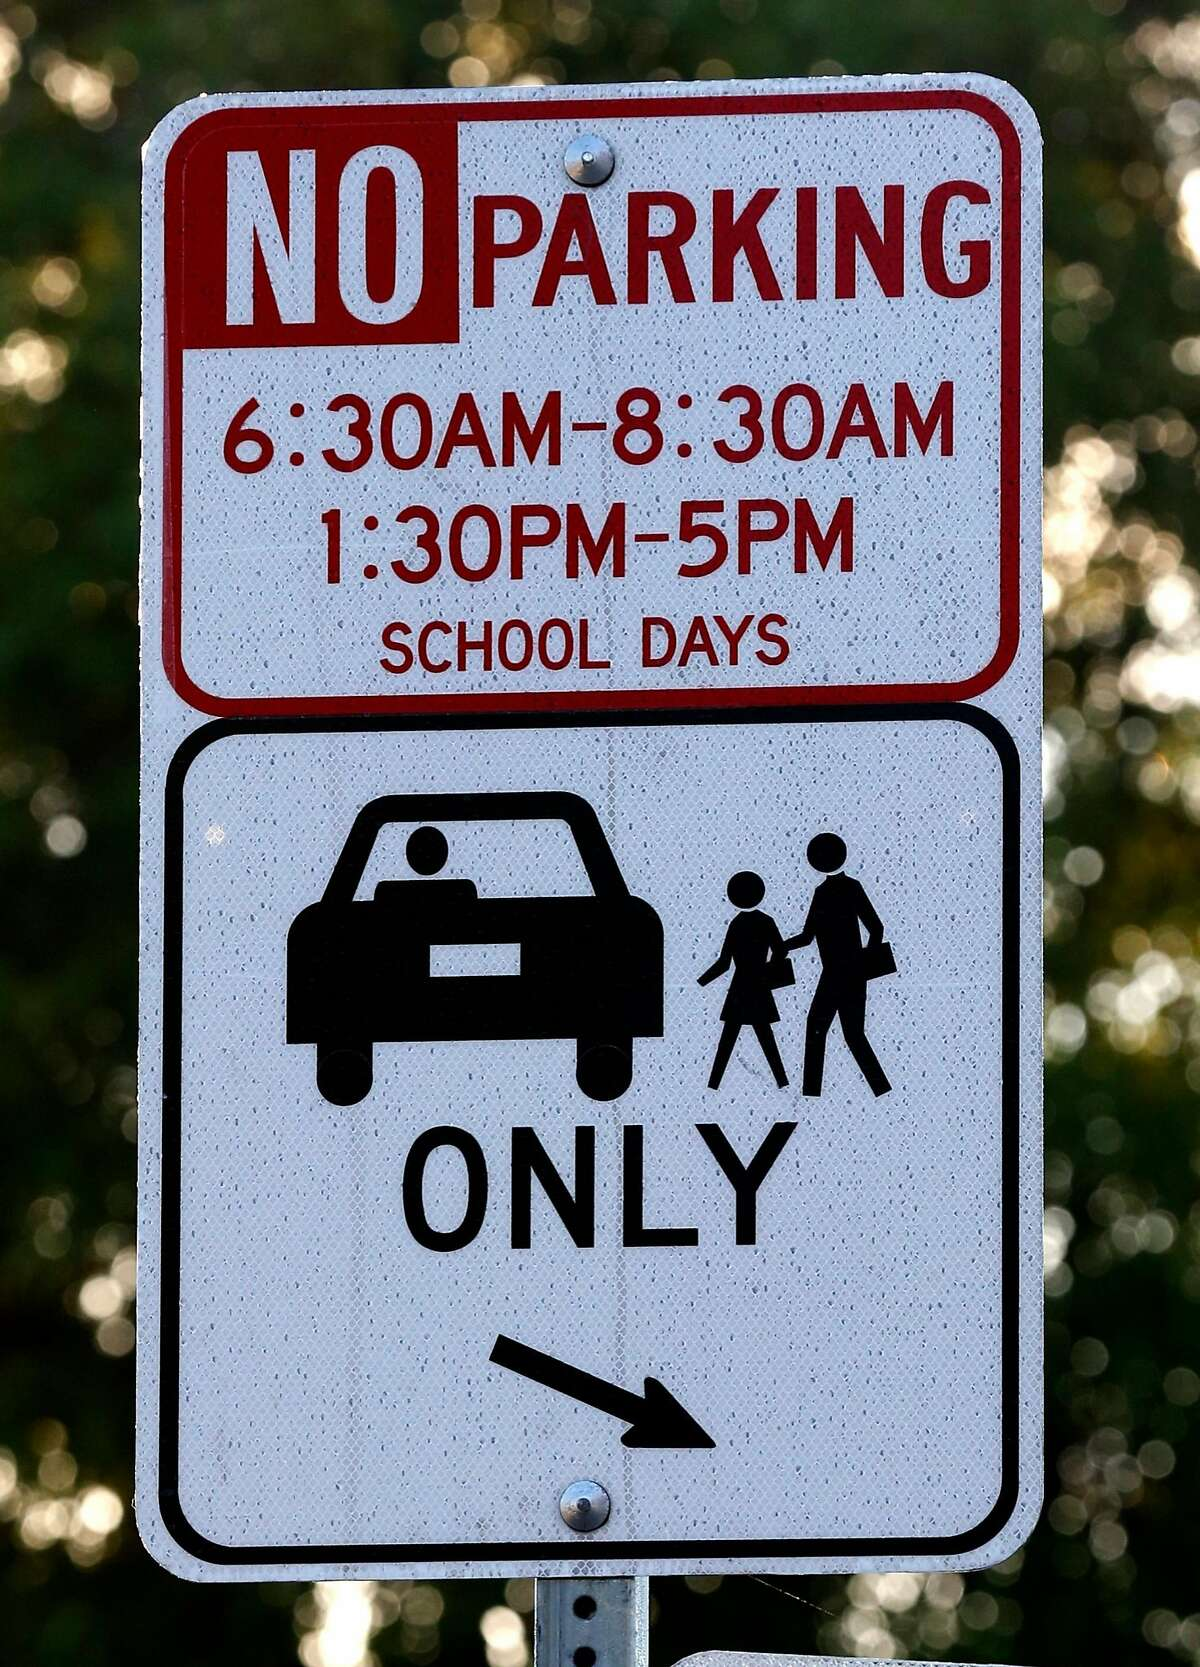 A special drop-off zone is designated for parents of Glenview Elementary School students on East 38th and Beaumont avenues in Oakland, Calif. on Friday, Nov. 17, 2017. Students are being bused to Santa Fe Elementary in North Oakland during reconstruction of their school. Delays and increased costs in the reconstruction of Glenview Elementary have angered parents and residents.